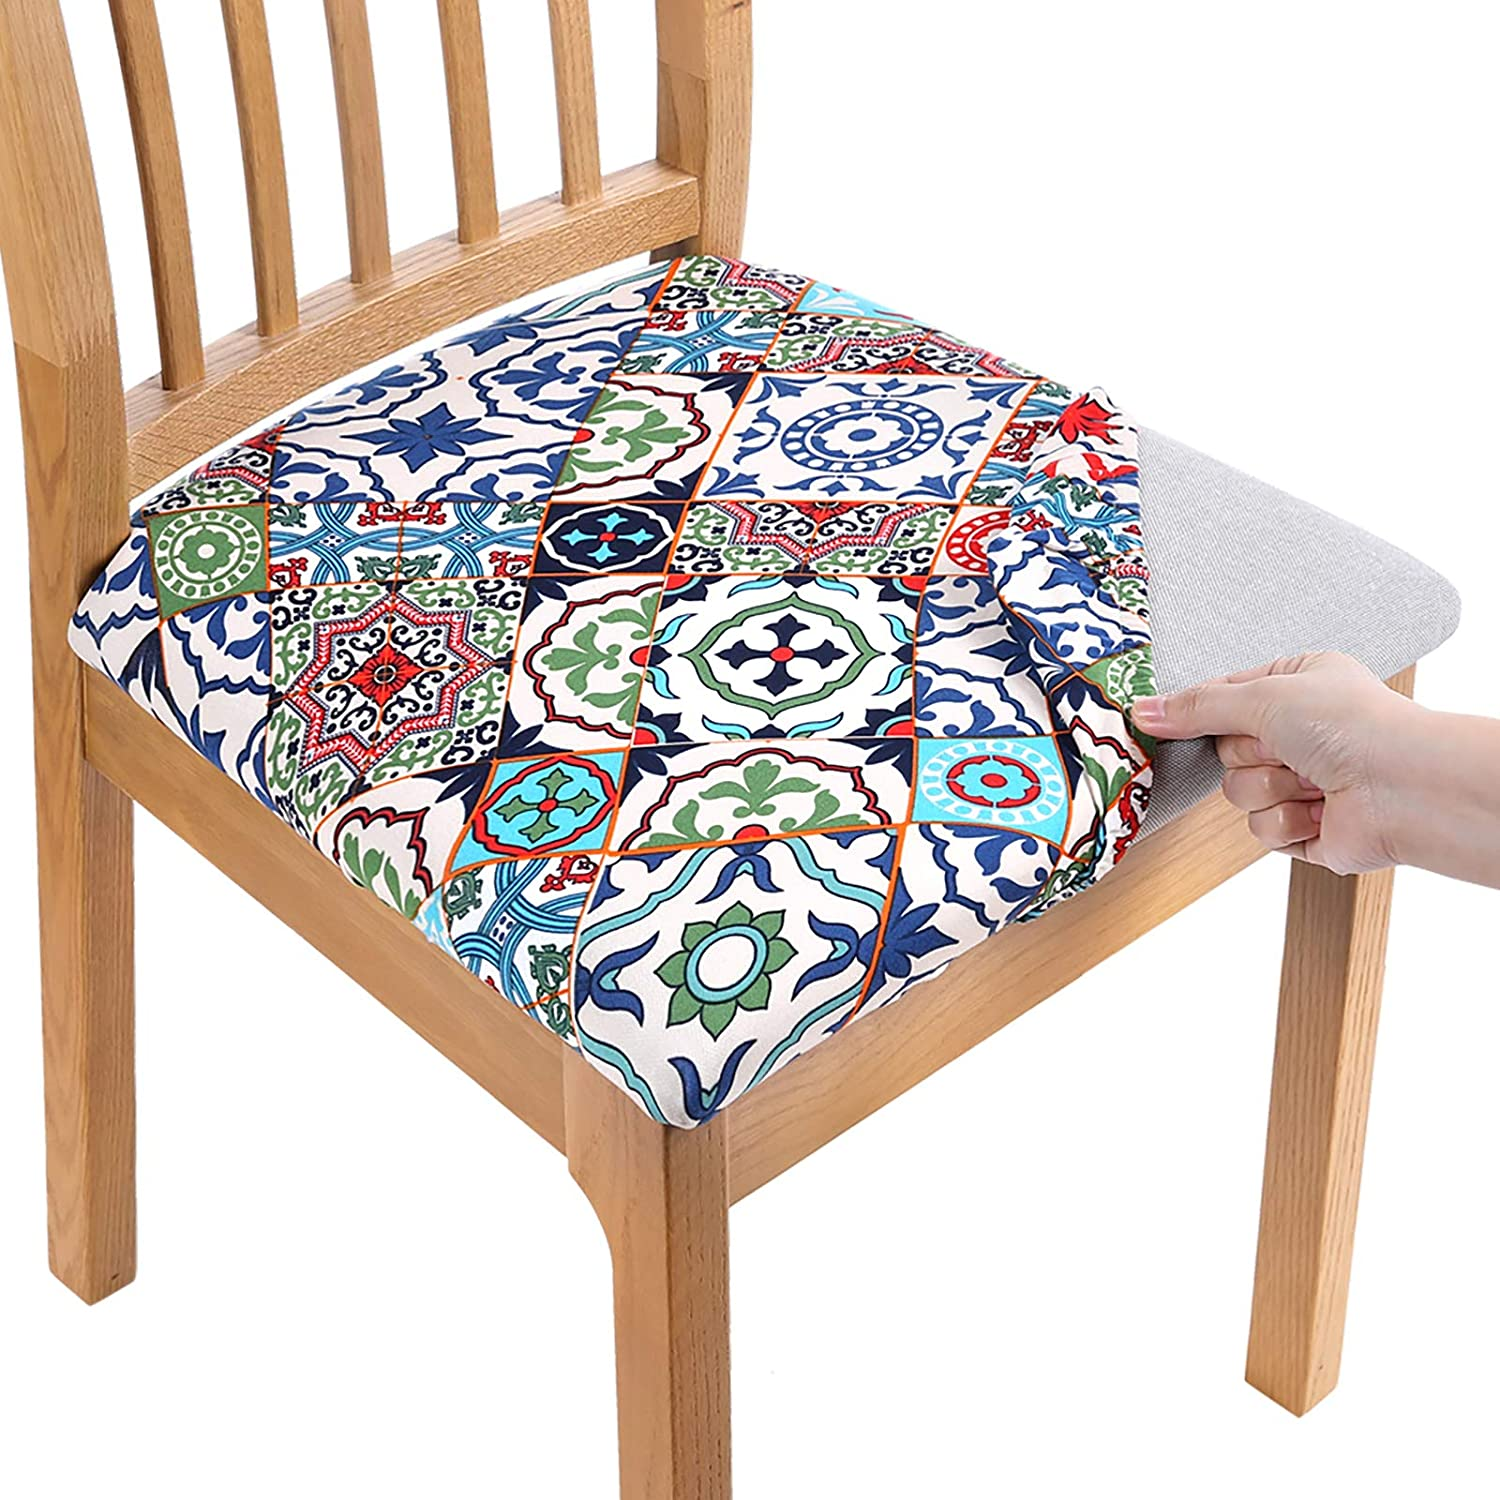 smiry Printed Dining Chair Seat Covers - Stretchy Removable Washable Upholstered Chair Seat Slipcover Protector (Set of 2, Colorful Vintage)